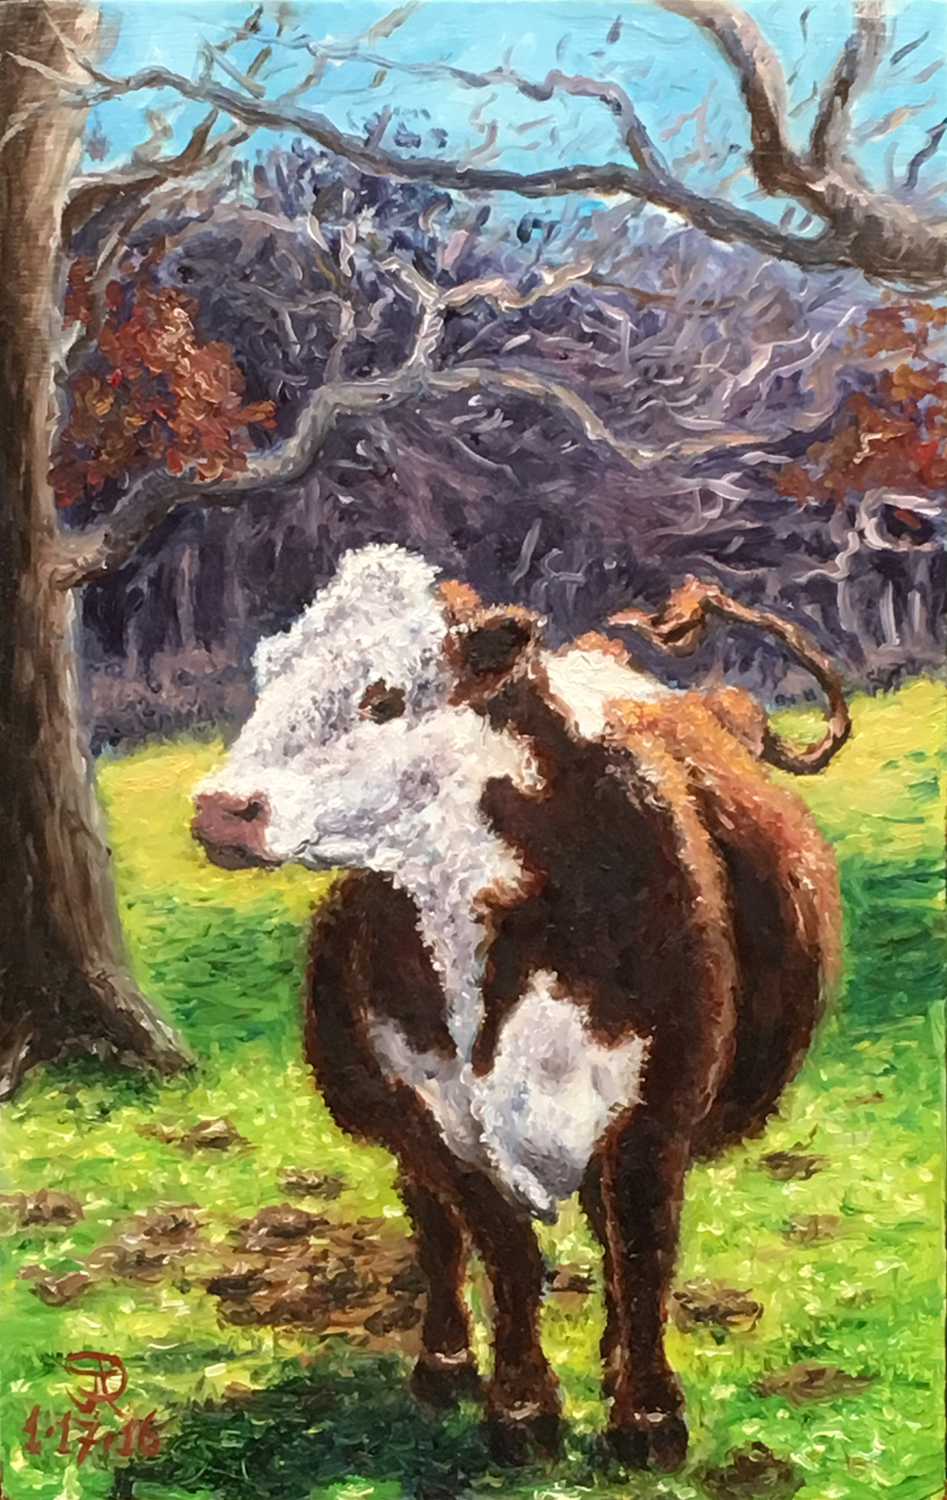 2016-0117-JP Powel-Oil On Panel-9.5hx6w-Polled Hereford-w.jpg